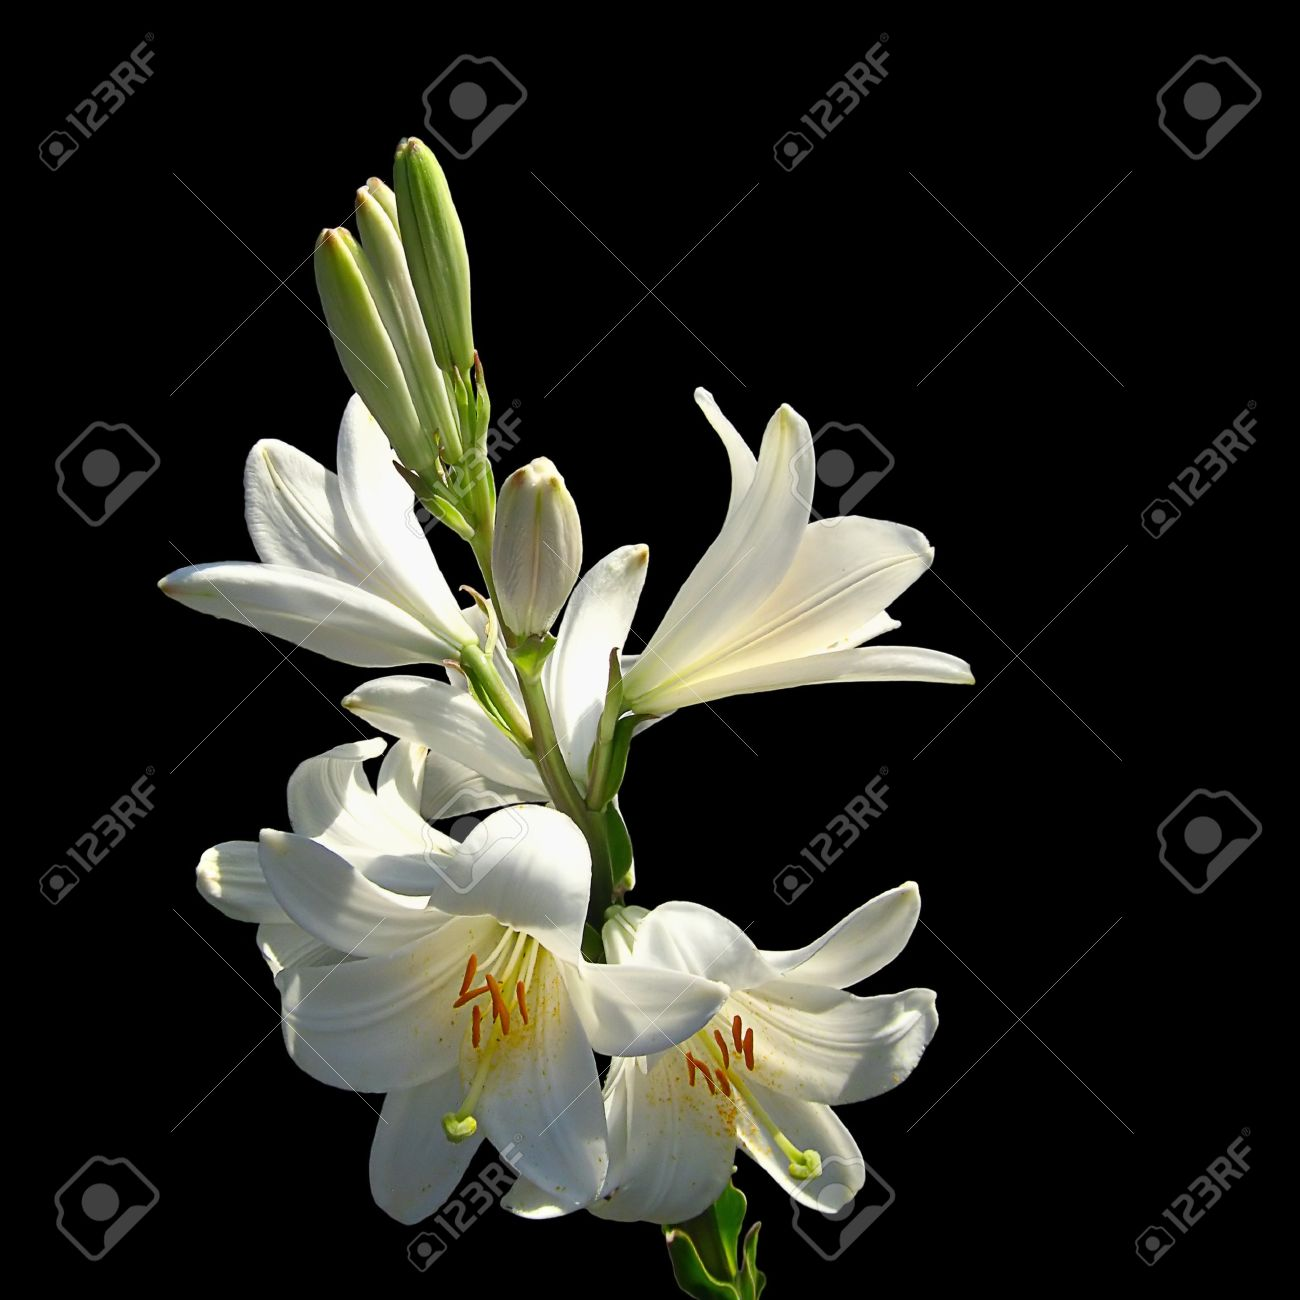 Easter lily flower closeup on black background lilium flower stock easter lily flower closeup on black background lilium flower stem with several flowers stock photo izmirmasajfo Gallery